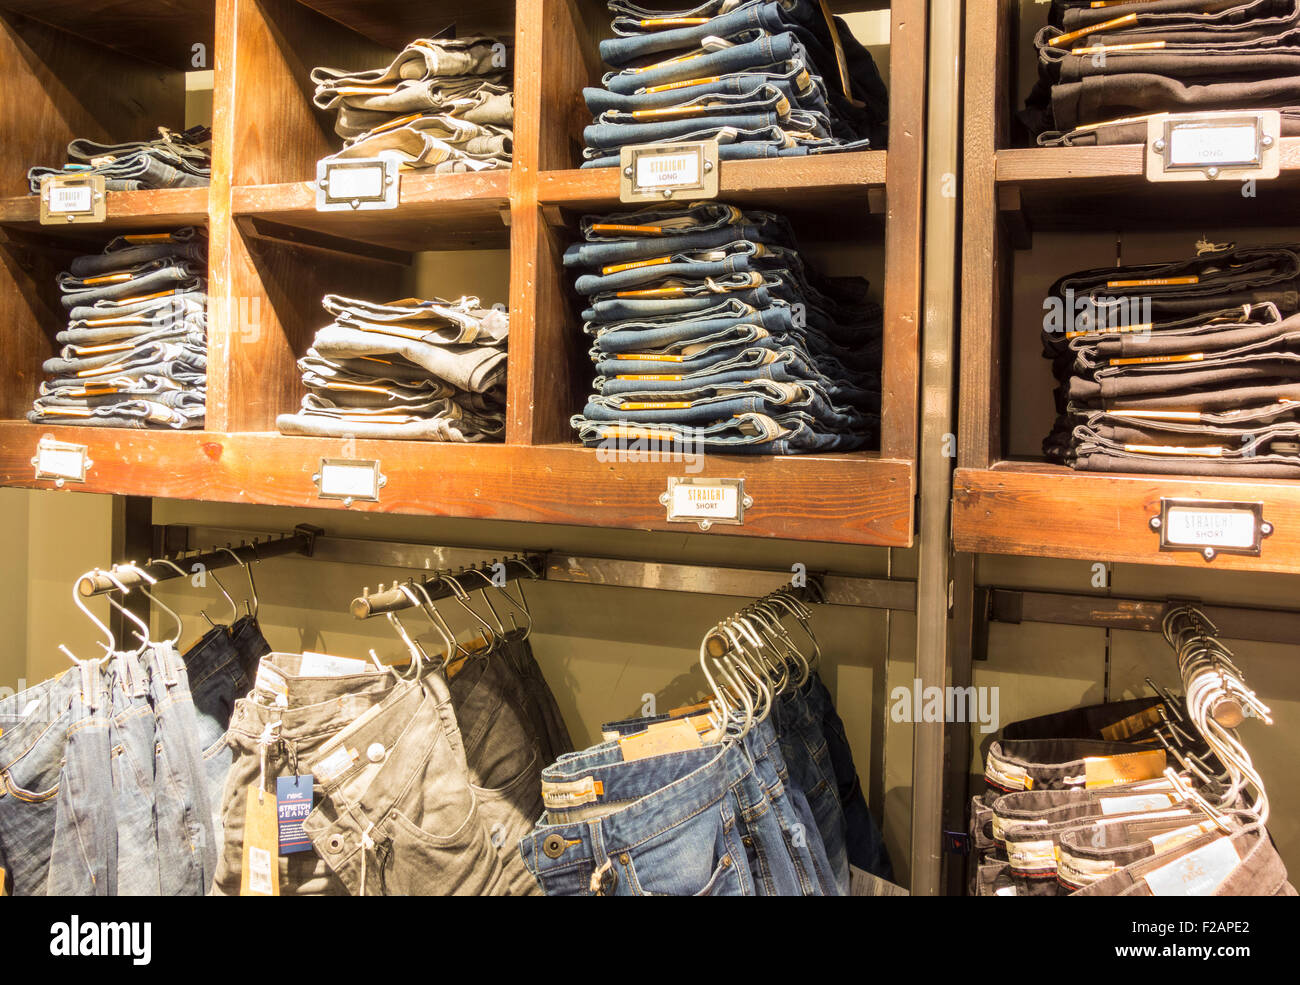 Denim Jeans display in clothing store. UK Stock Photo Royalty Free Image 87518314 - Alamy